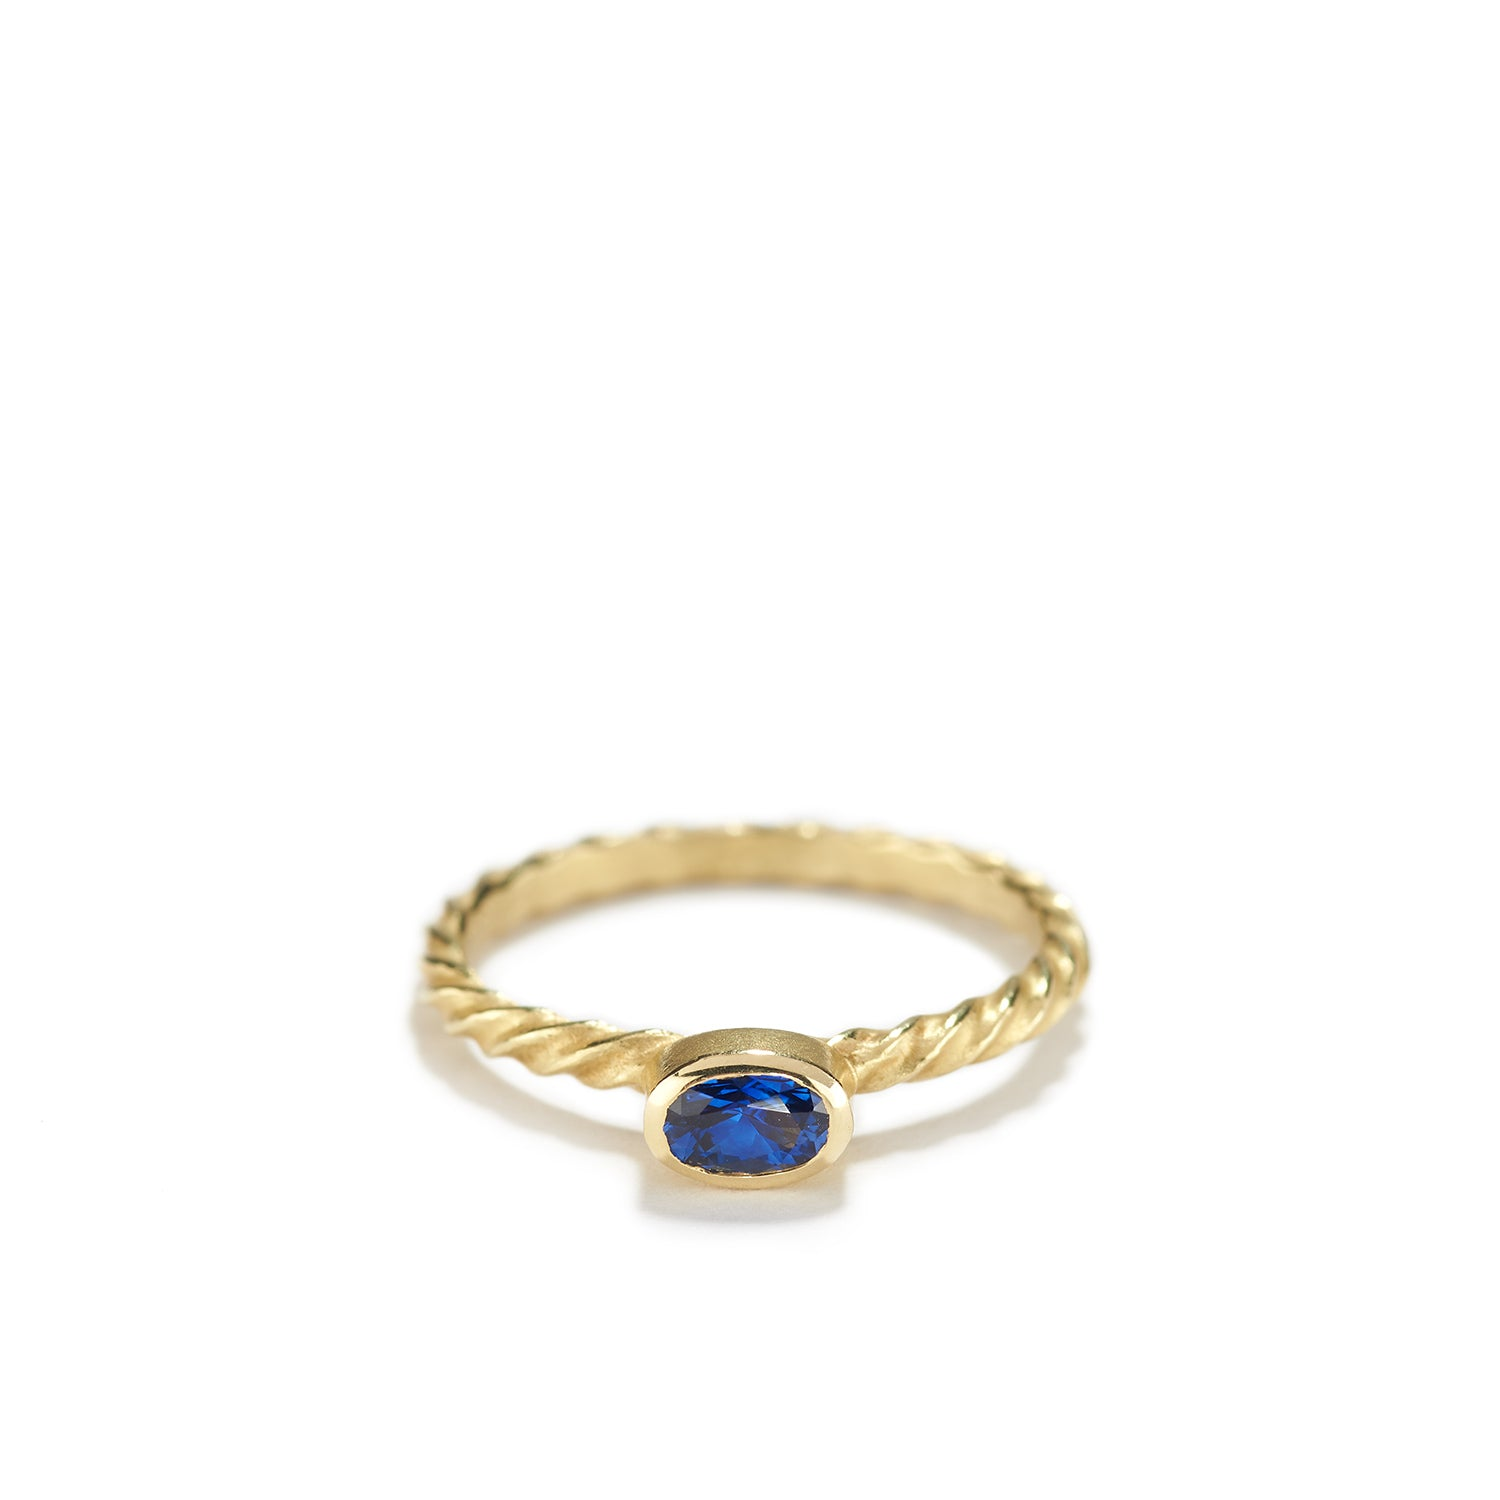 Blue Sapphire Ring with Spiral Band